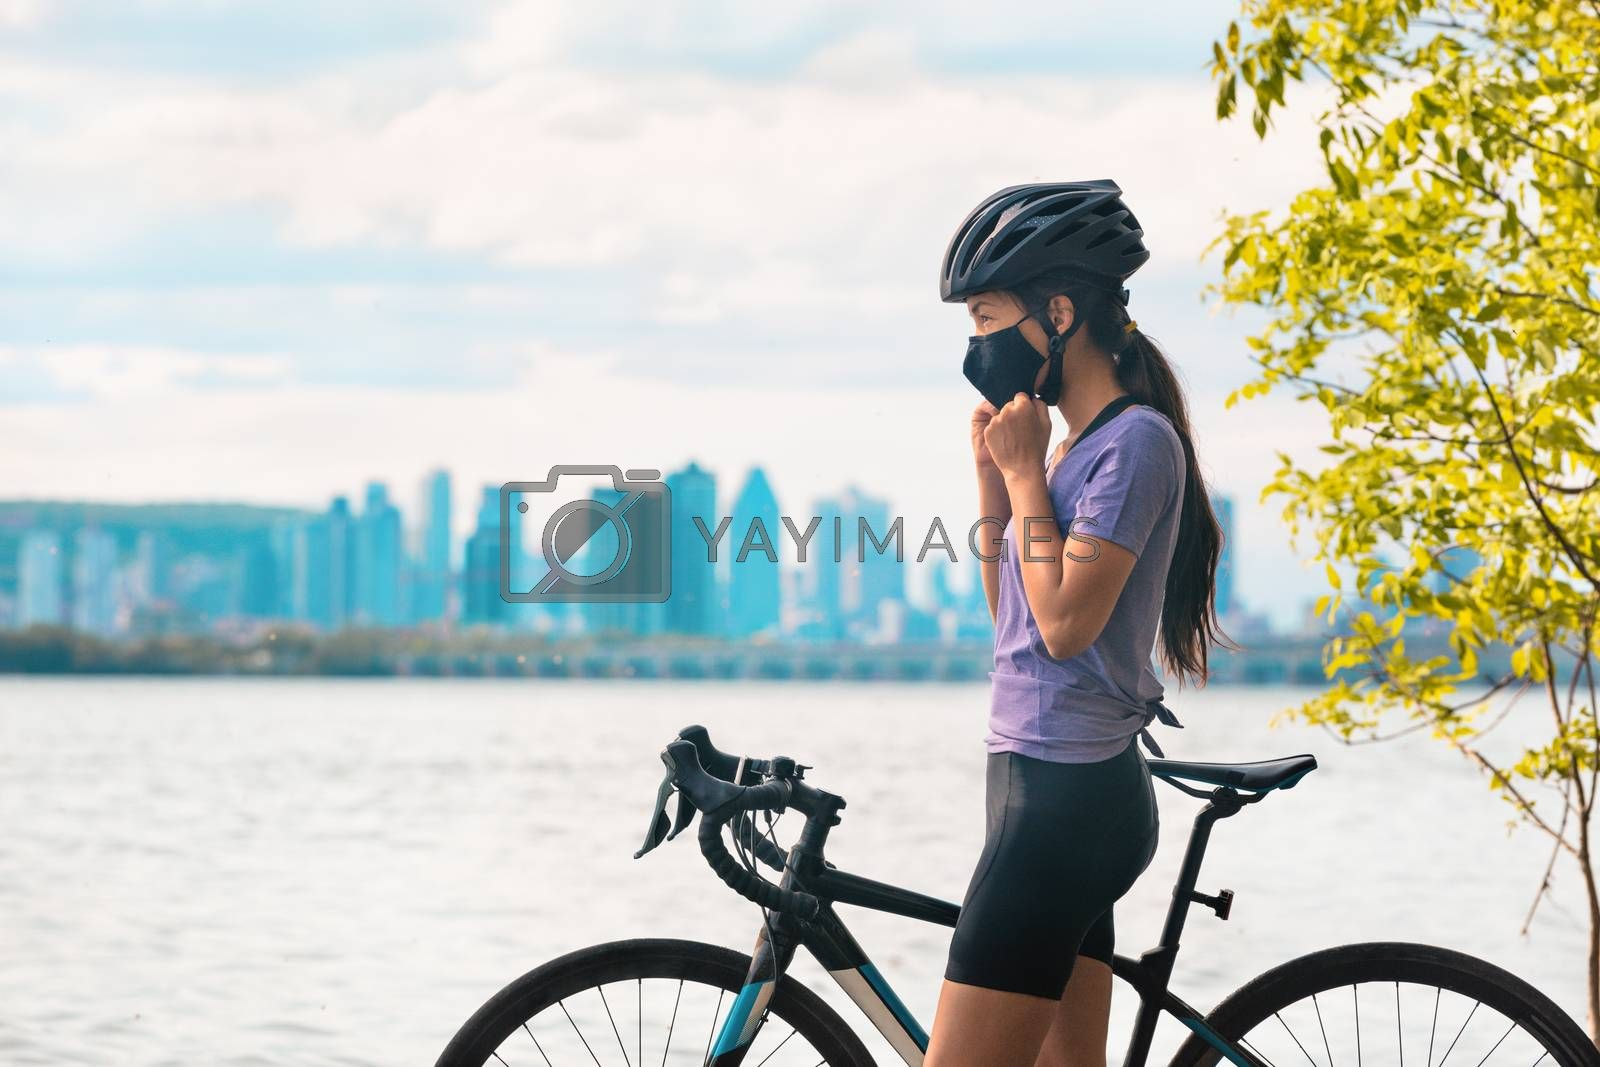 Wearing covid-19 mask while riding bike. Sport cyclist woman biking putting on face mask for Covid-19 prevention during summer outdoor leisure exercise activity. Fitness outside by Maridav